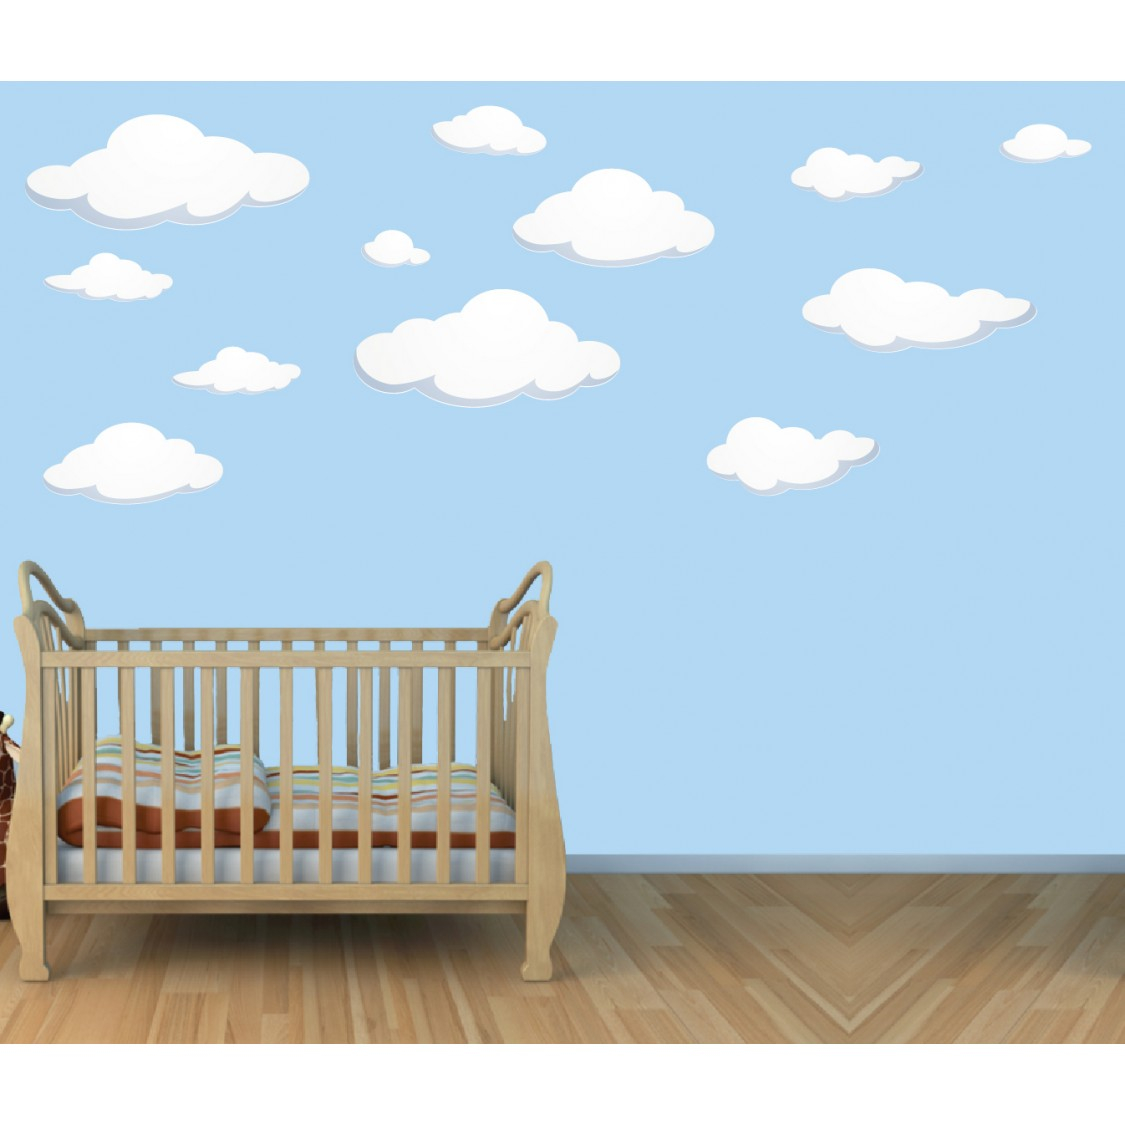 Large Wall Decal of Cloud Wall Murals For Play Rooms